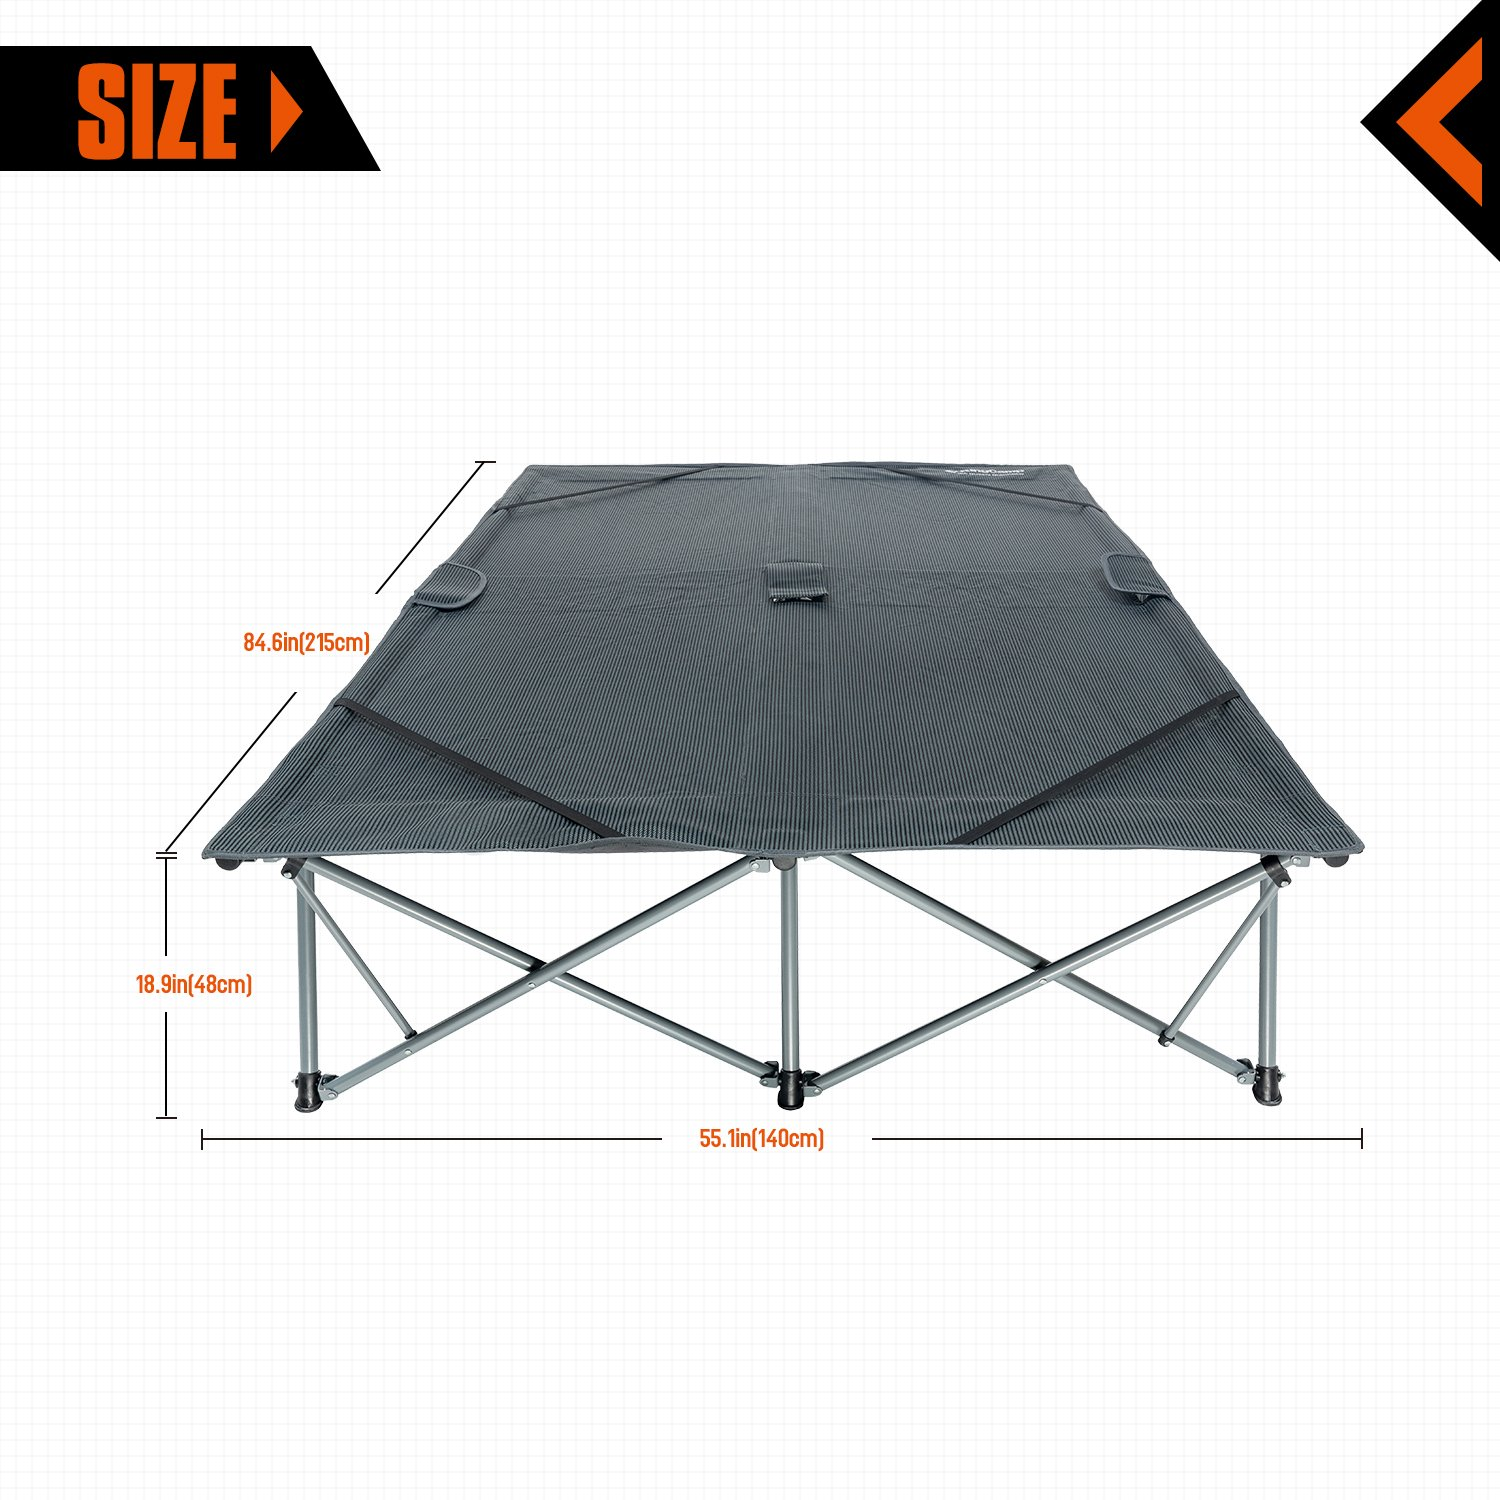 KingCamp Camping Cot Double 2 Person Oversized Anodized Steel Frame Portable Folding Bed Portable with Wheeled Carry Bag by KingCamp (Image #2)